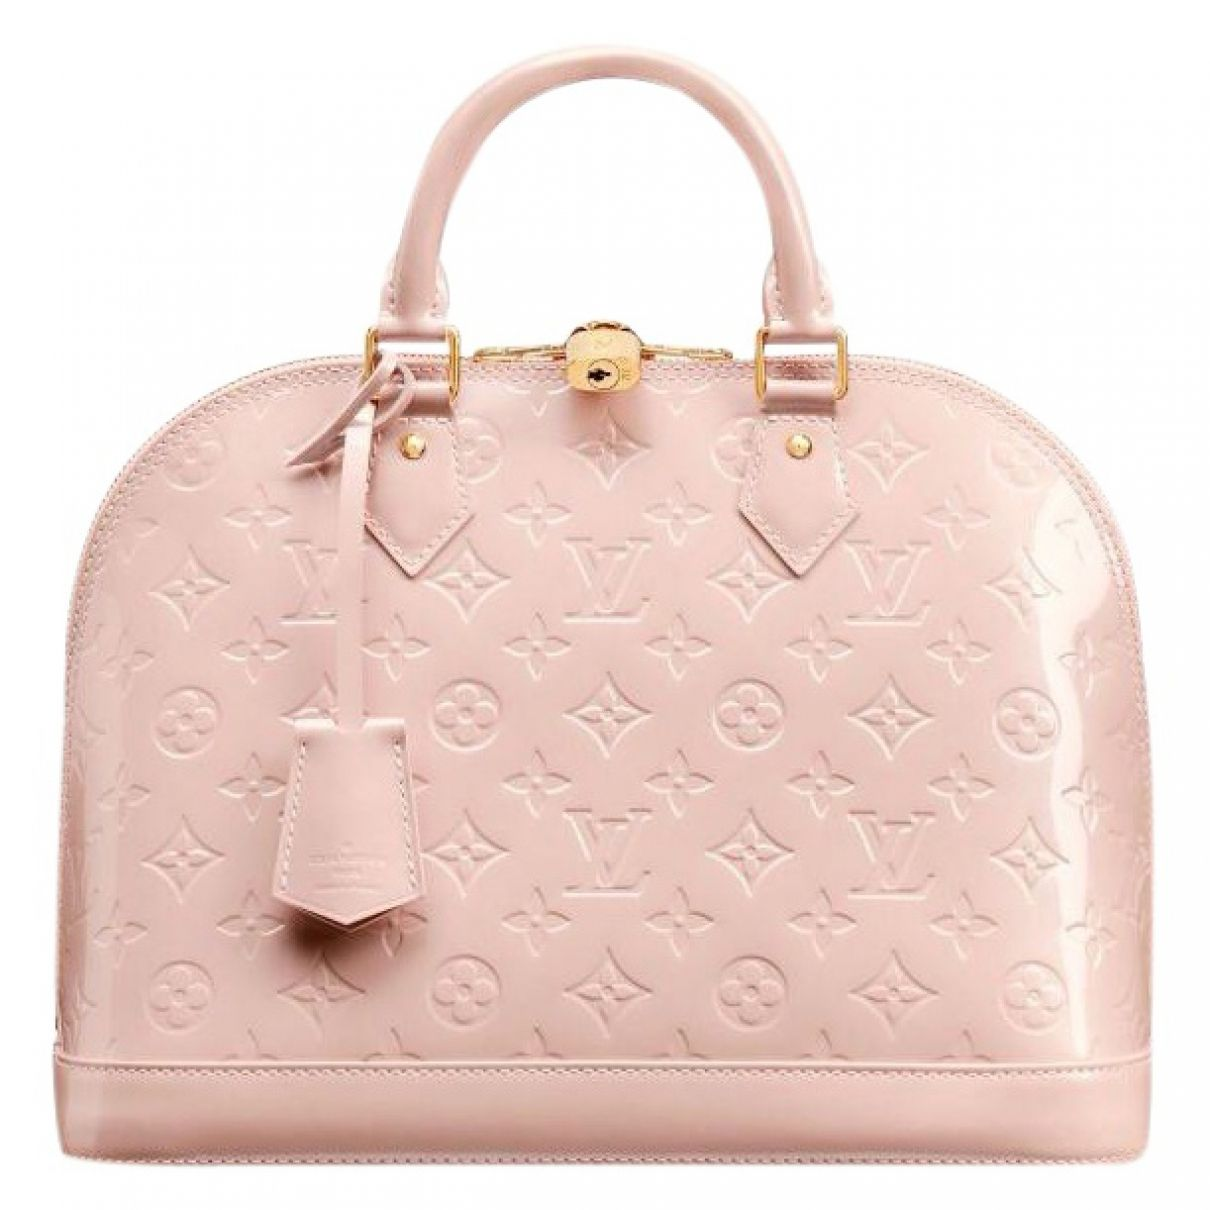 e7085bb8dd19 Louis Vuitton Pink Patent leather Handbag Alma